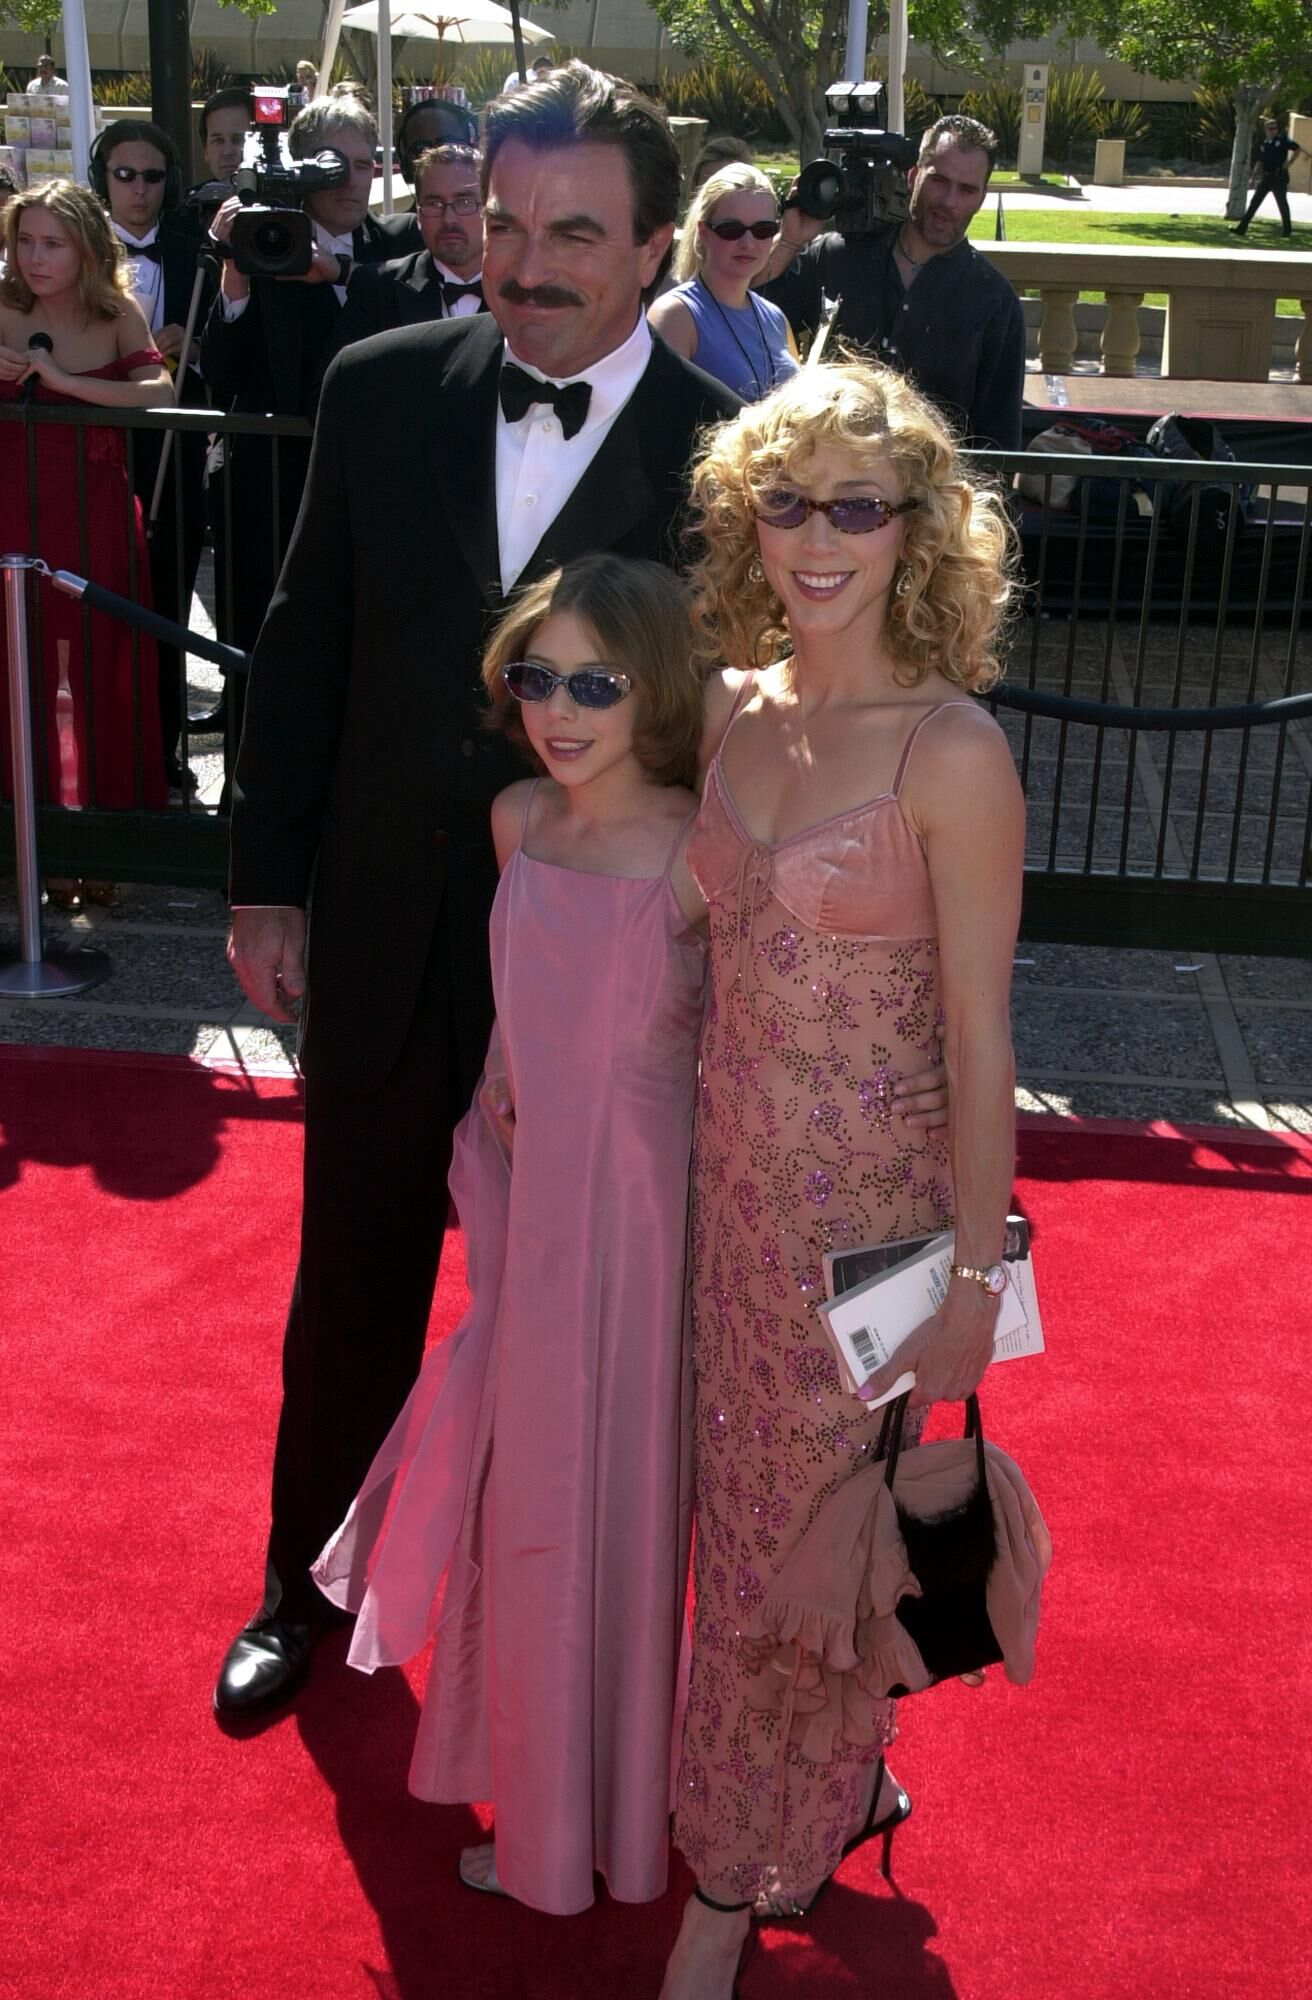 Tom Selleck and family arrive August 26, 2000 at the Creative Emmy Awards held at the Pasadena Civic Center  | Getty Images / Global Images Ukraine